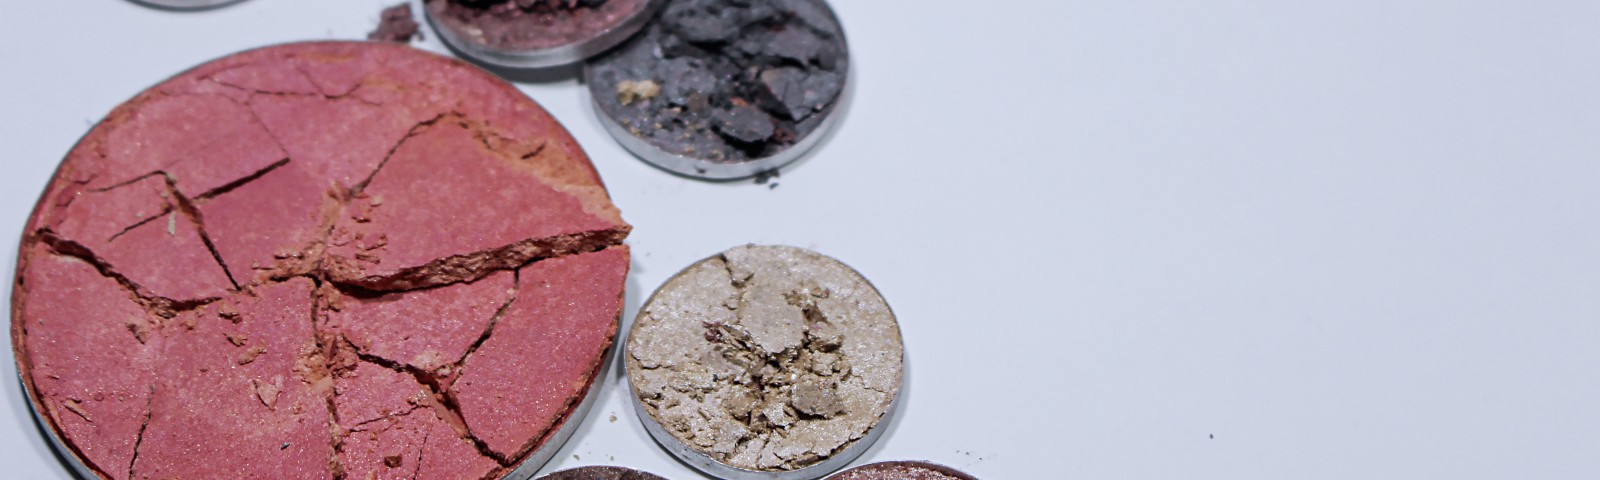 Circles of cracked makeup powder